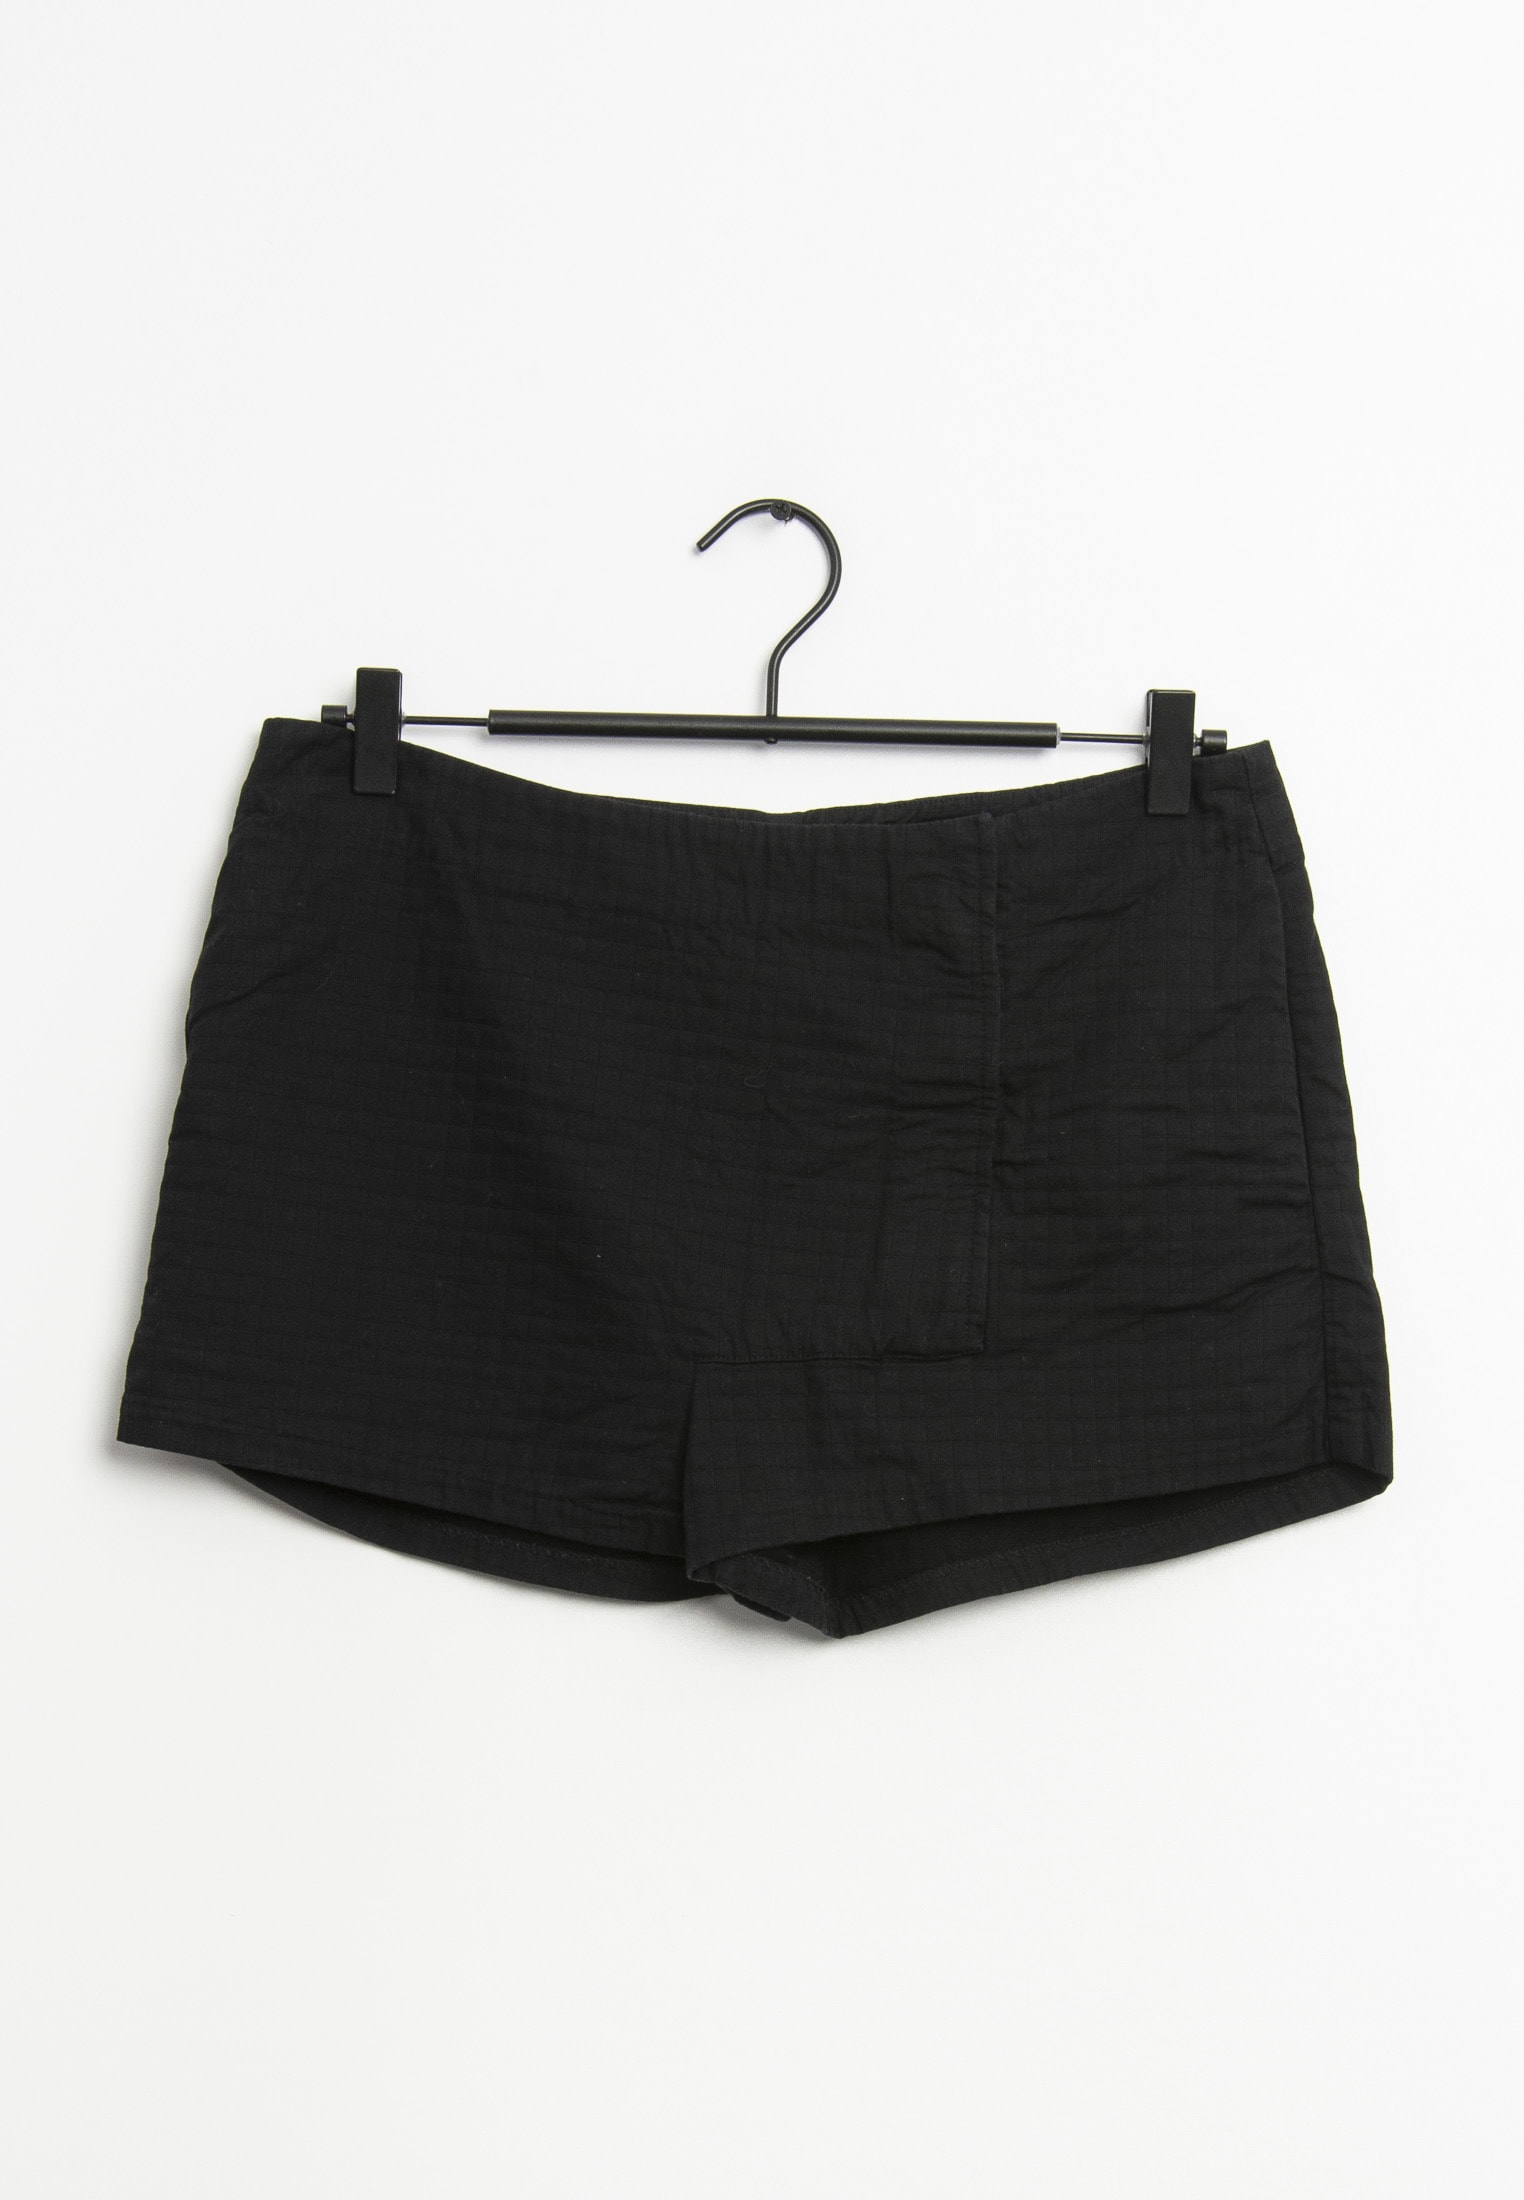 & other stories Shorts Schwarz Gr.38